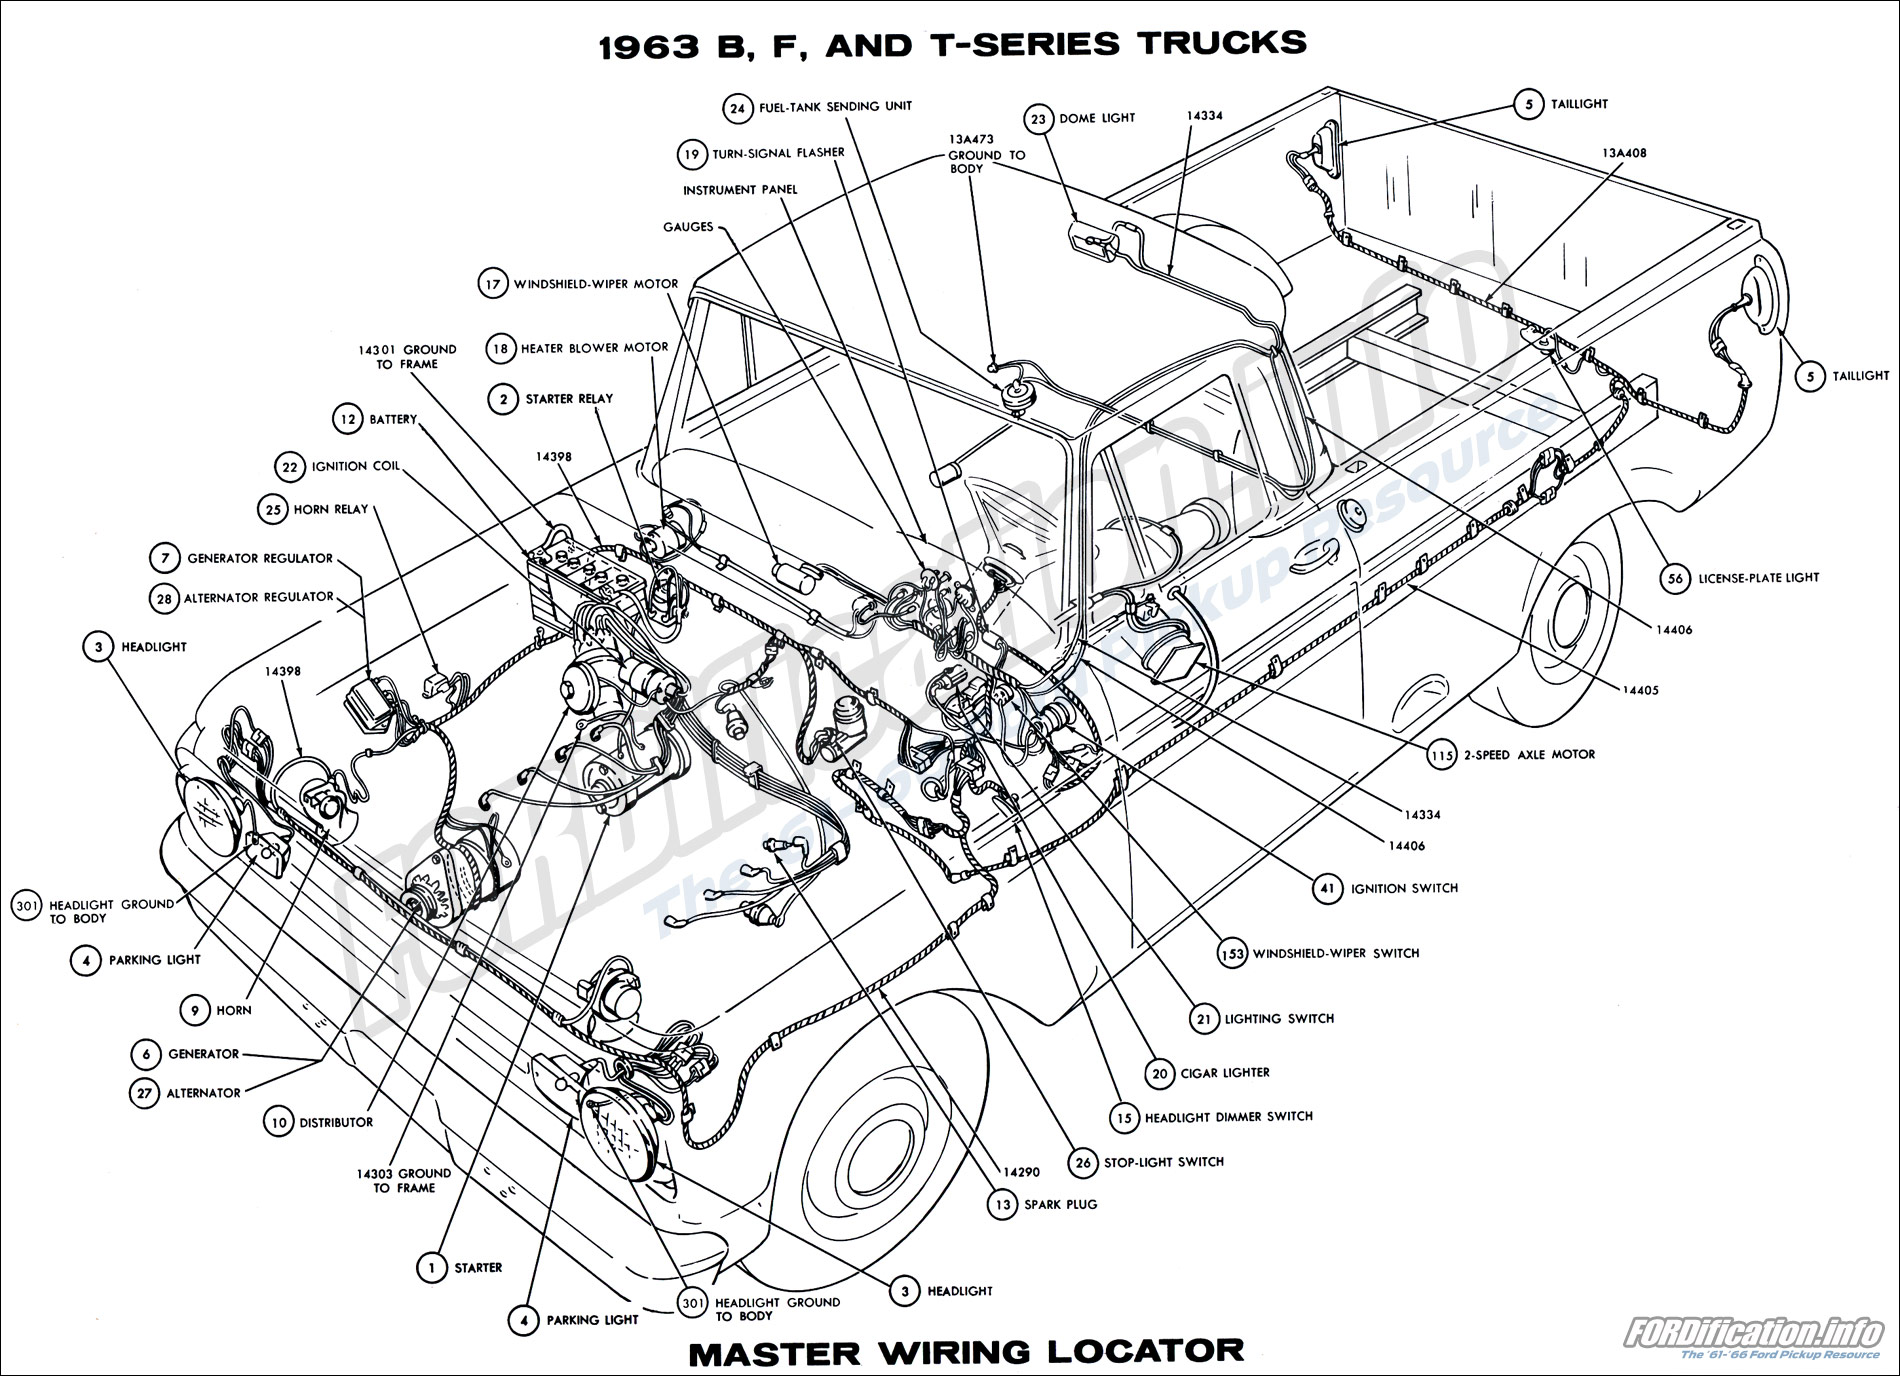 1961 ford f100 wiring diagram for color starting know about wiring 1980 f100  wiring diagram 1963